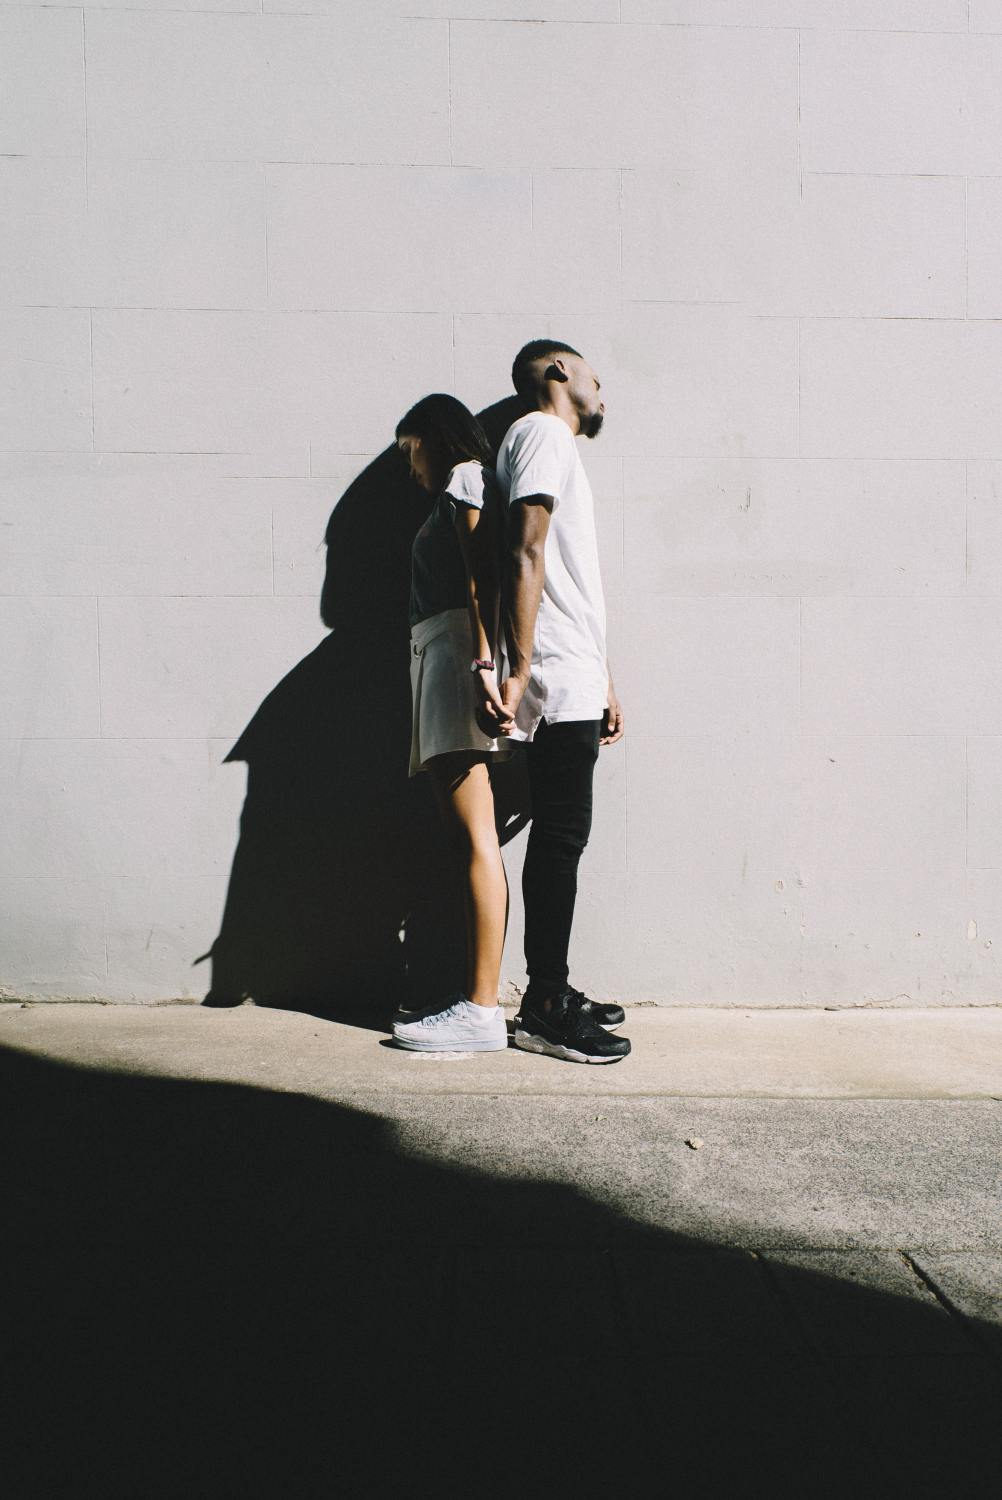 Signs of An Abusive Relationship You Should Look Out For